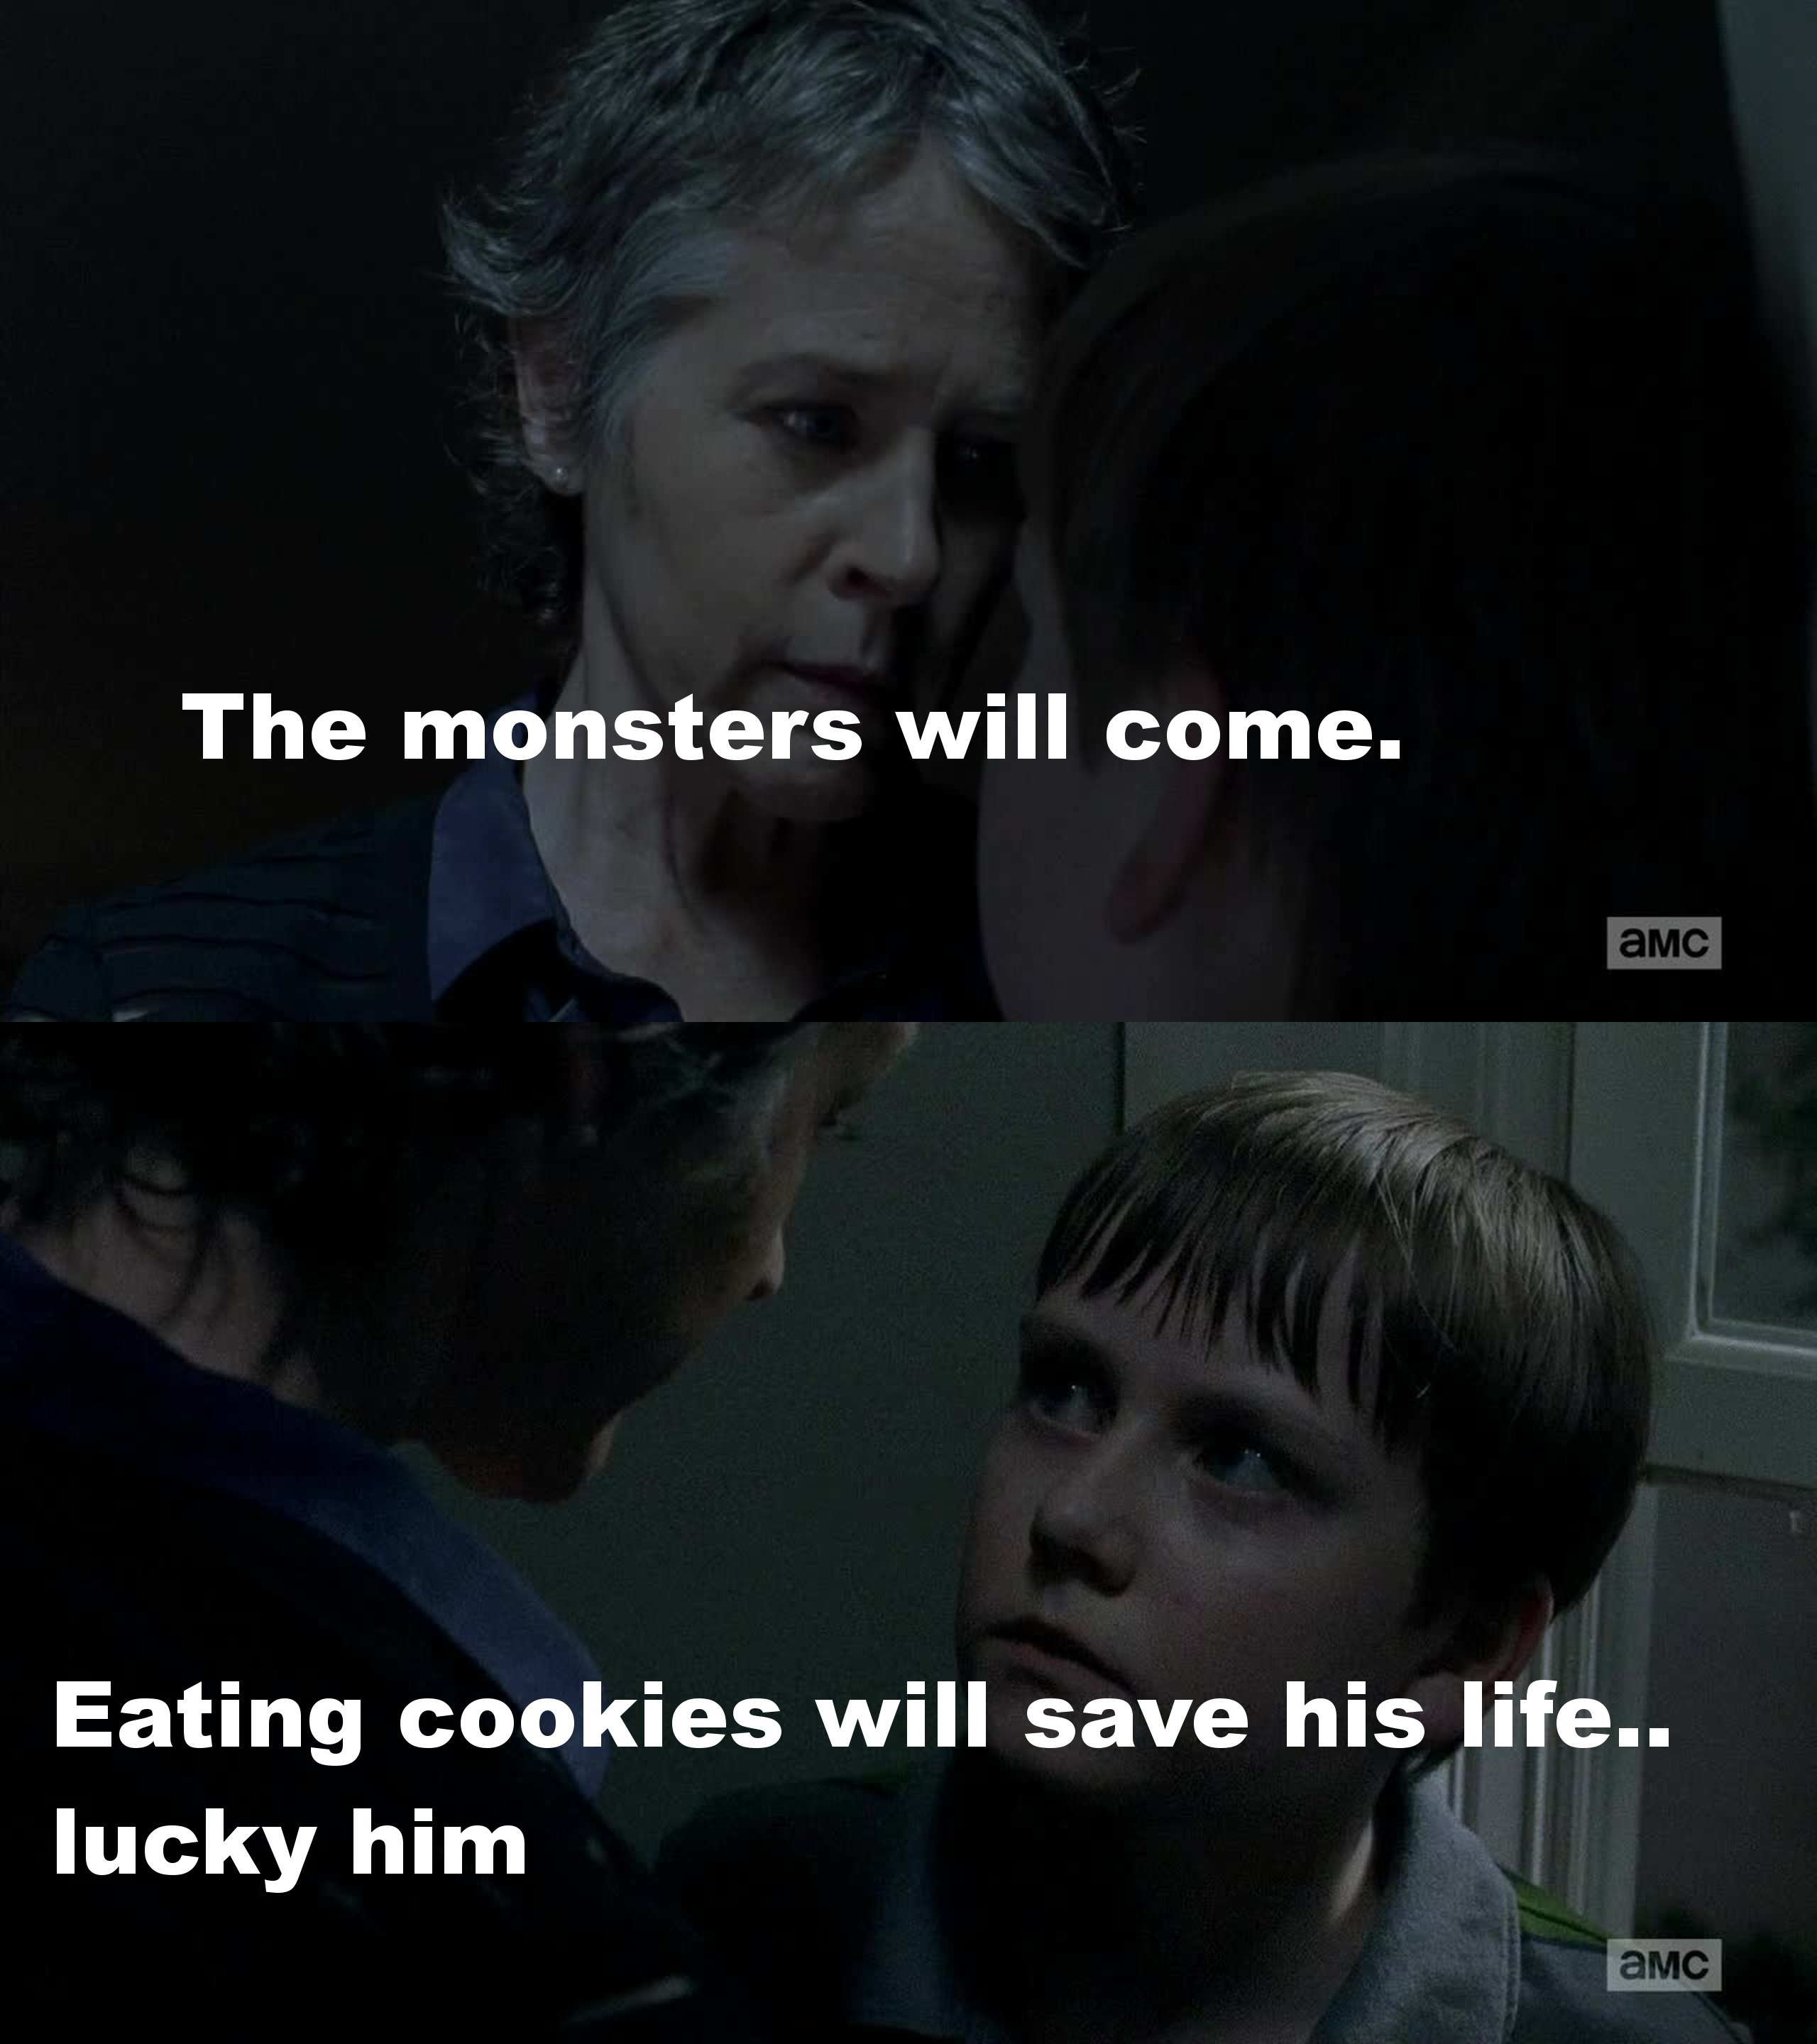 Carol is a badass. She is a great two-faced character and I just love how easily she can play a double game! She can act like a nice woman socializing with other women but she still is that strong woman we've known for a few seasons now.  Look at that scene! She was terrifying .... poor kid. If one day Carol offers you a cookie you better accept it and tell her it's good ... otherwise you'll end up tied up to a tree waiting for death to come